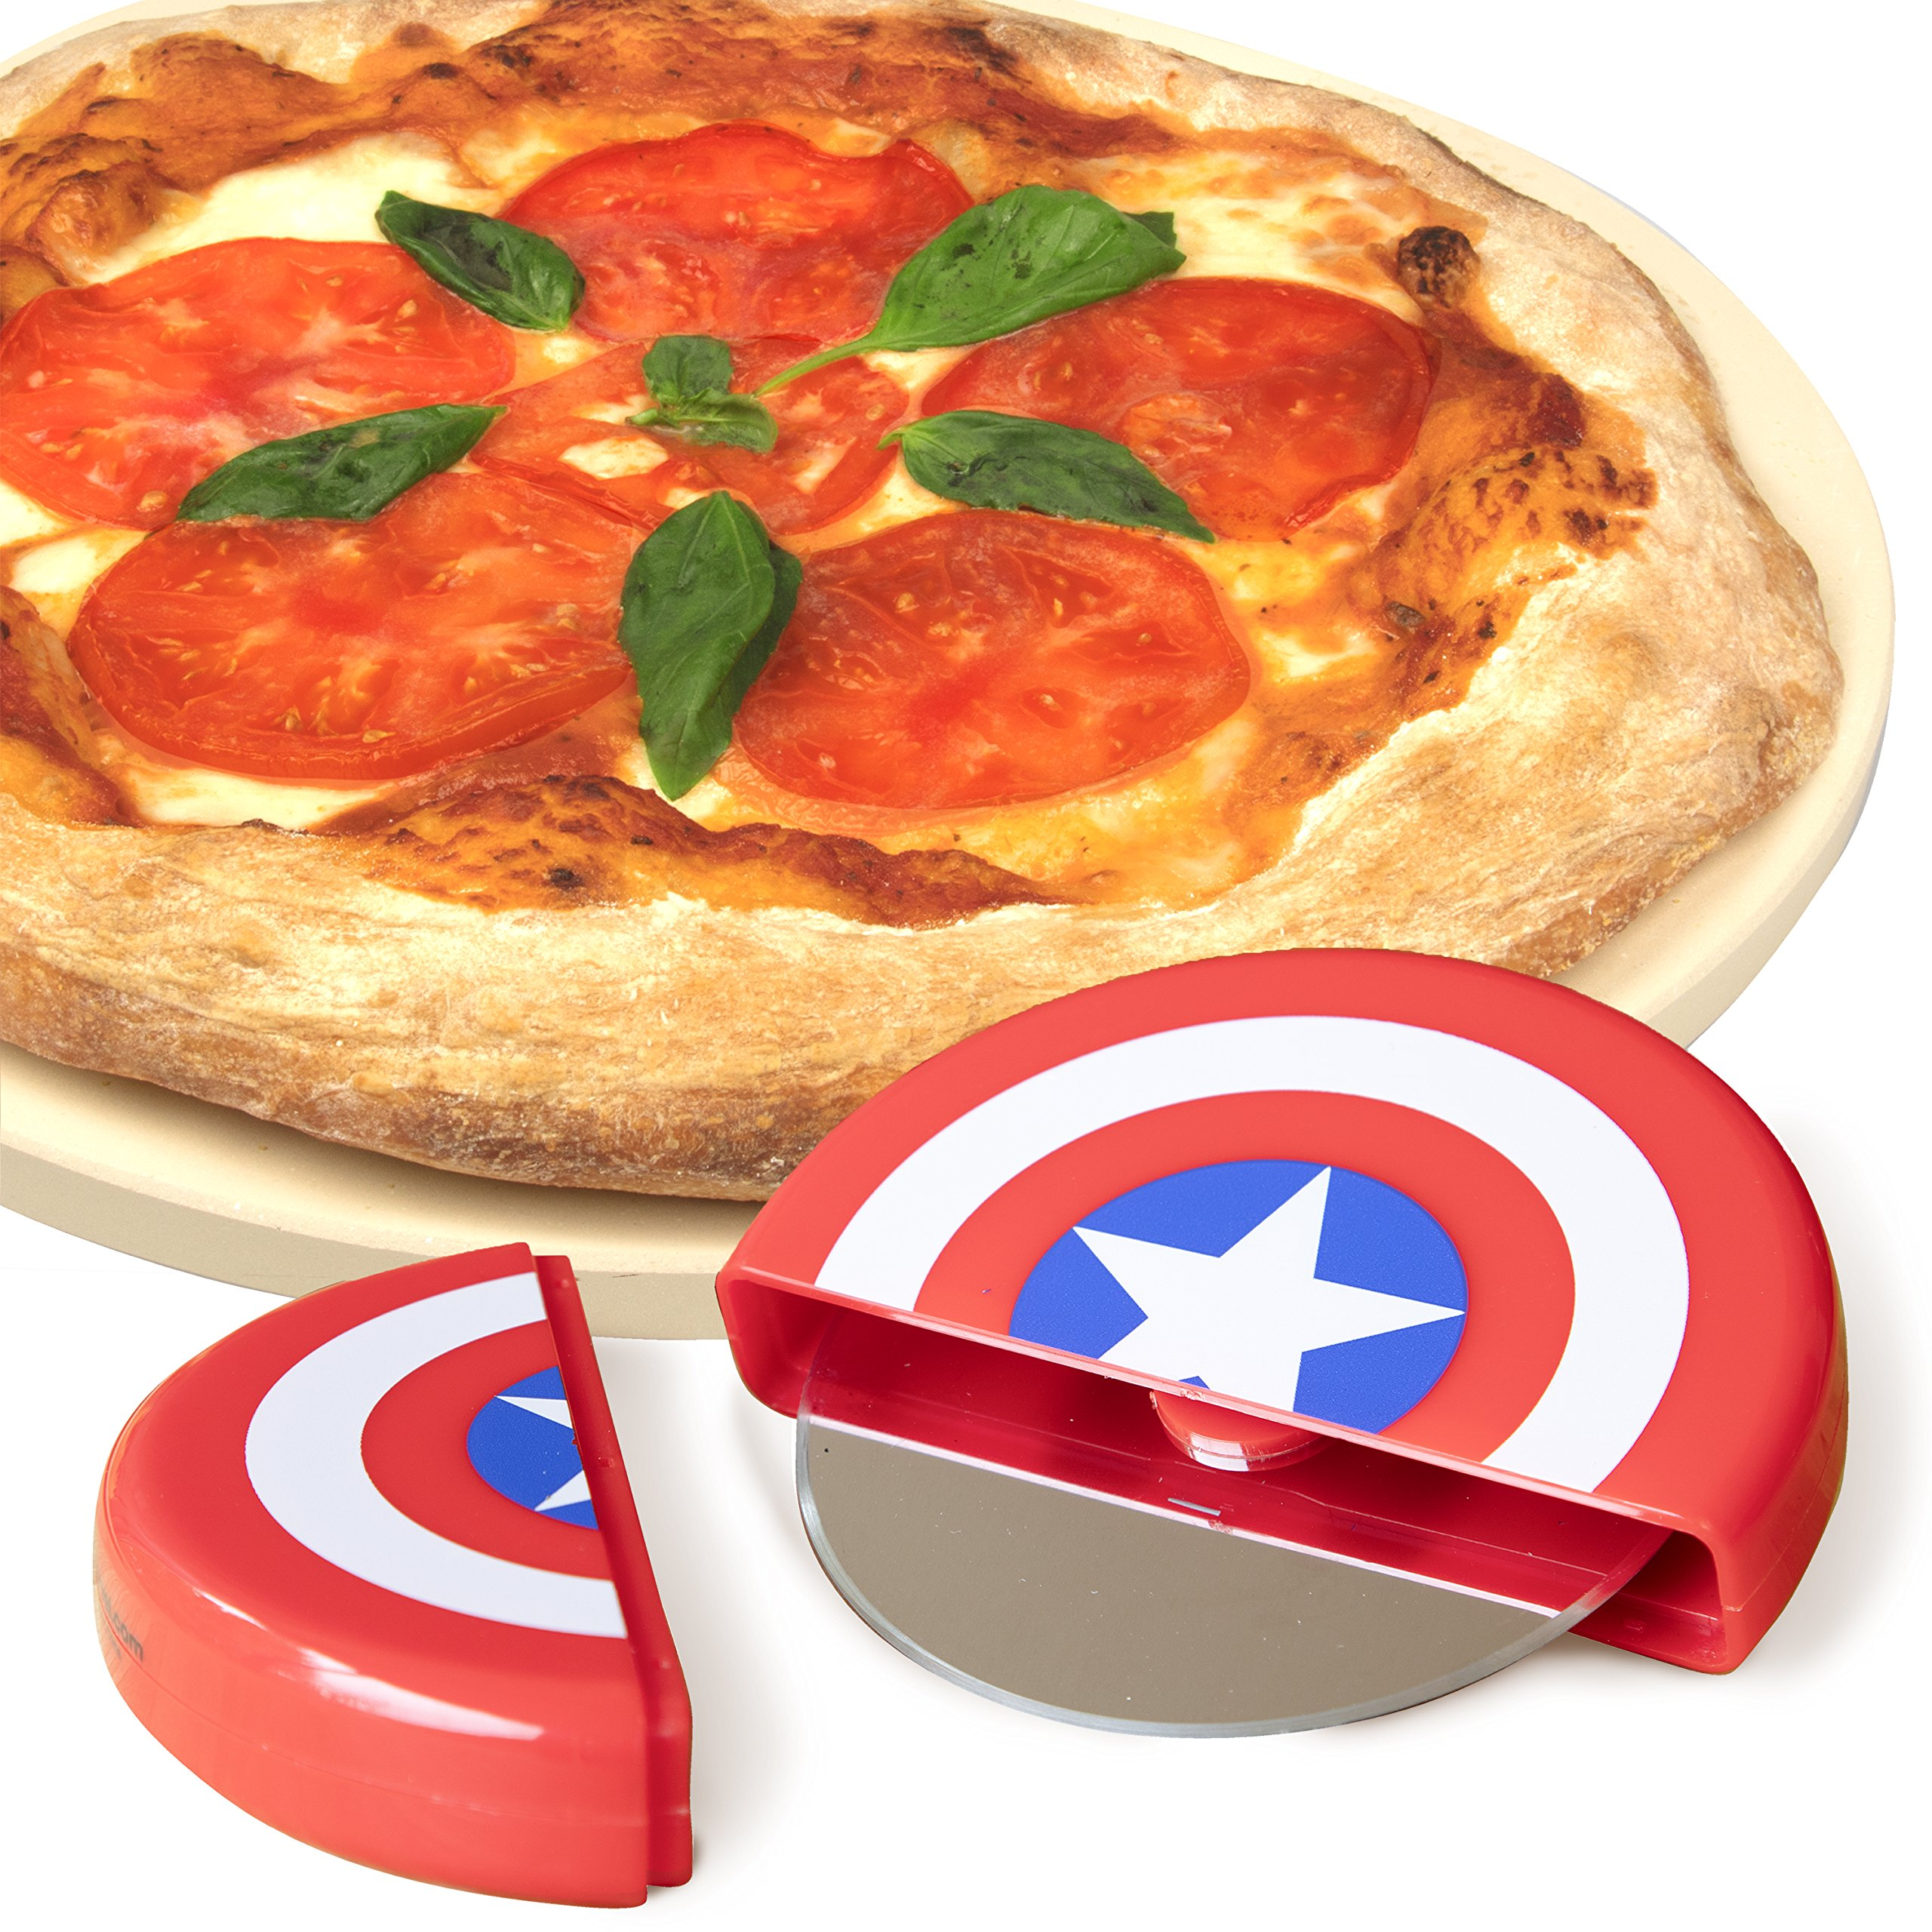 Marvel Captain America Pizza Cutter - Stainless Steel Blade with Shield Case